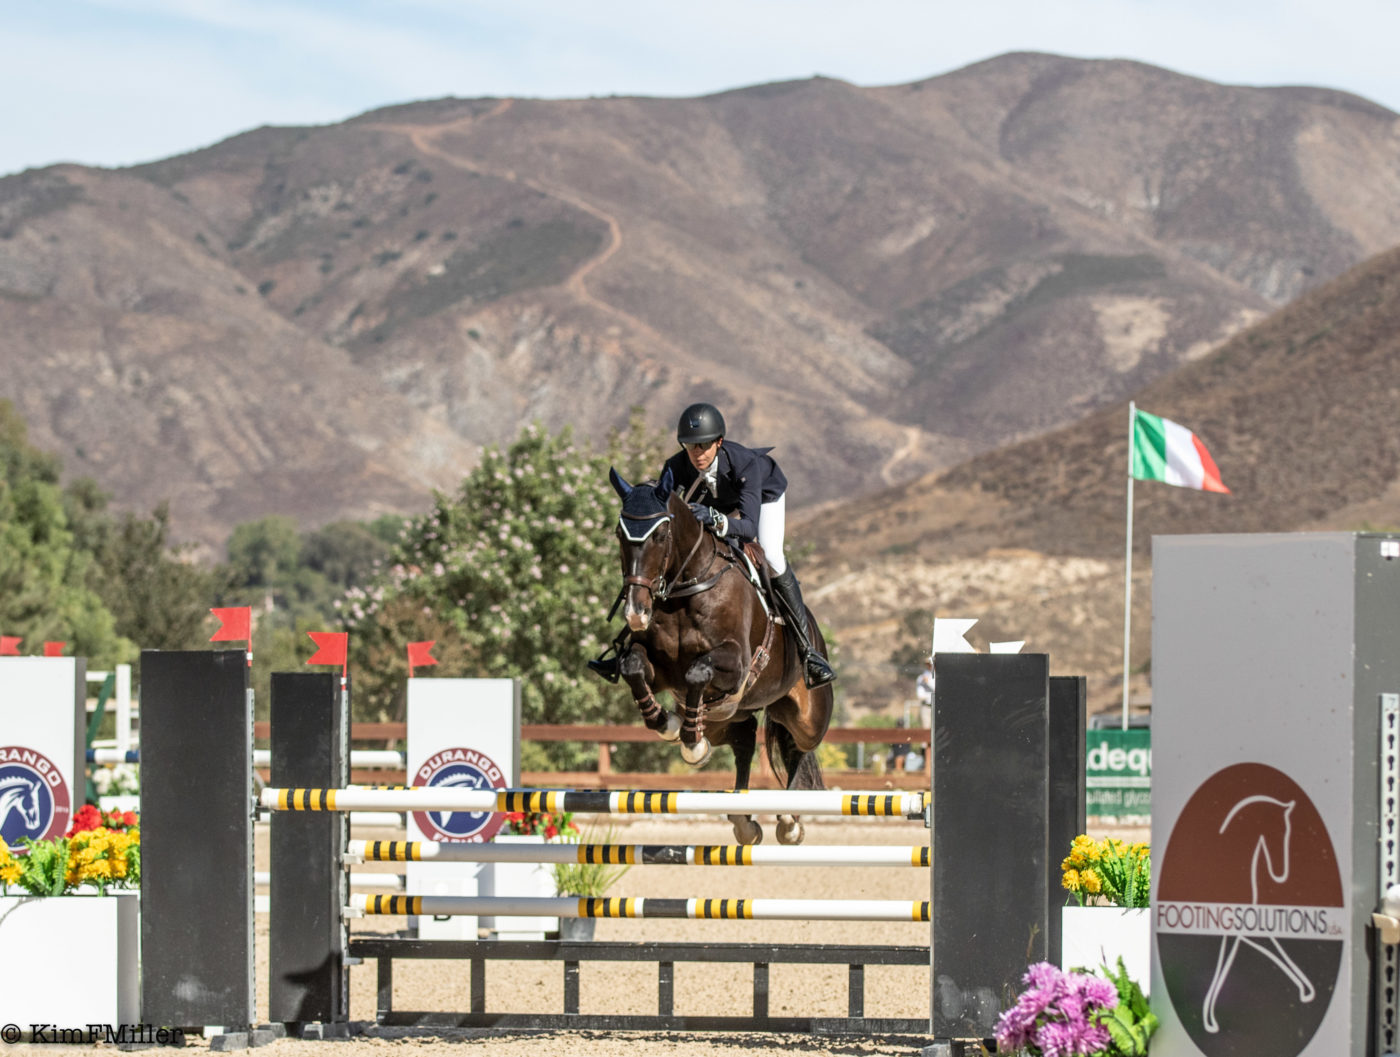 CCI3*-L - 2nd - Asia Vedder and Isi